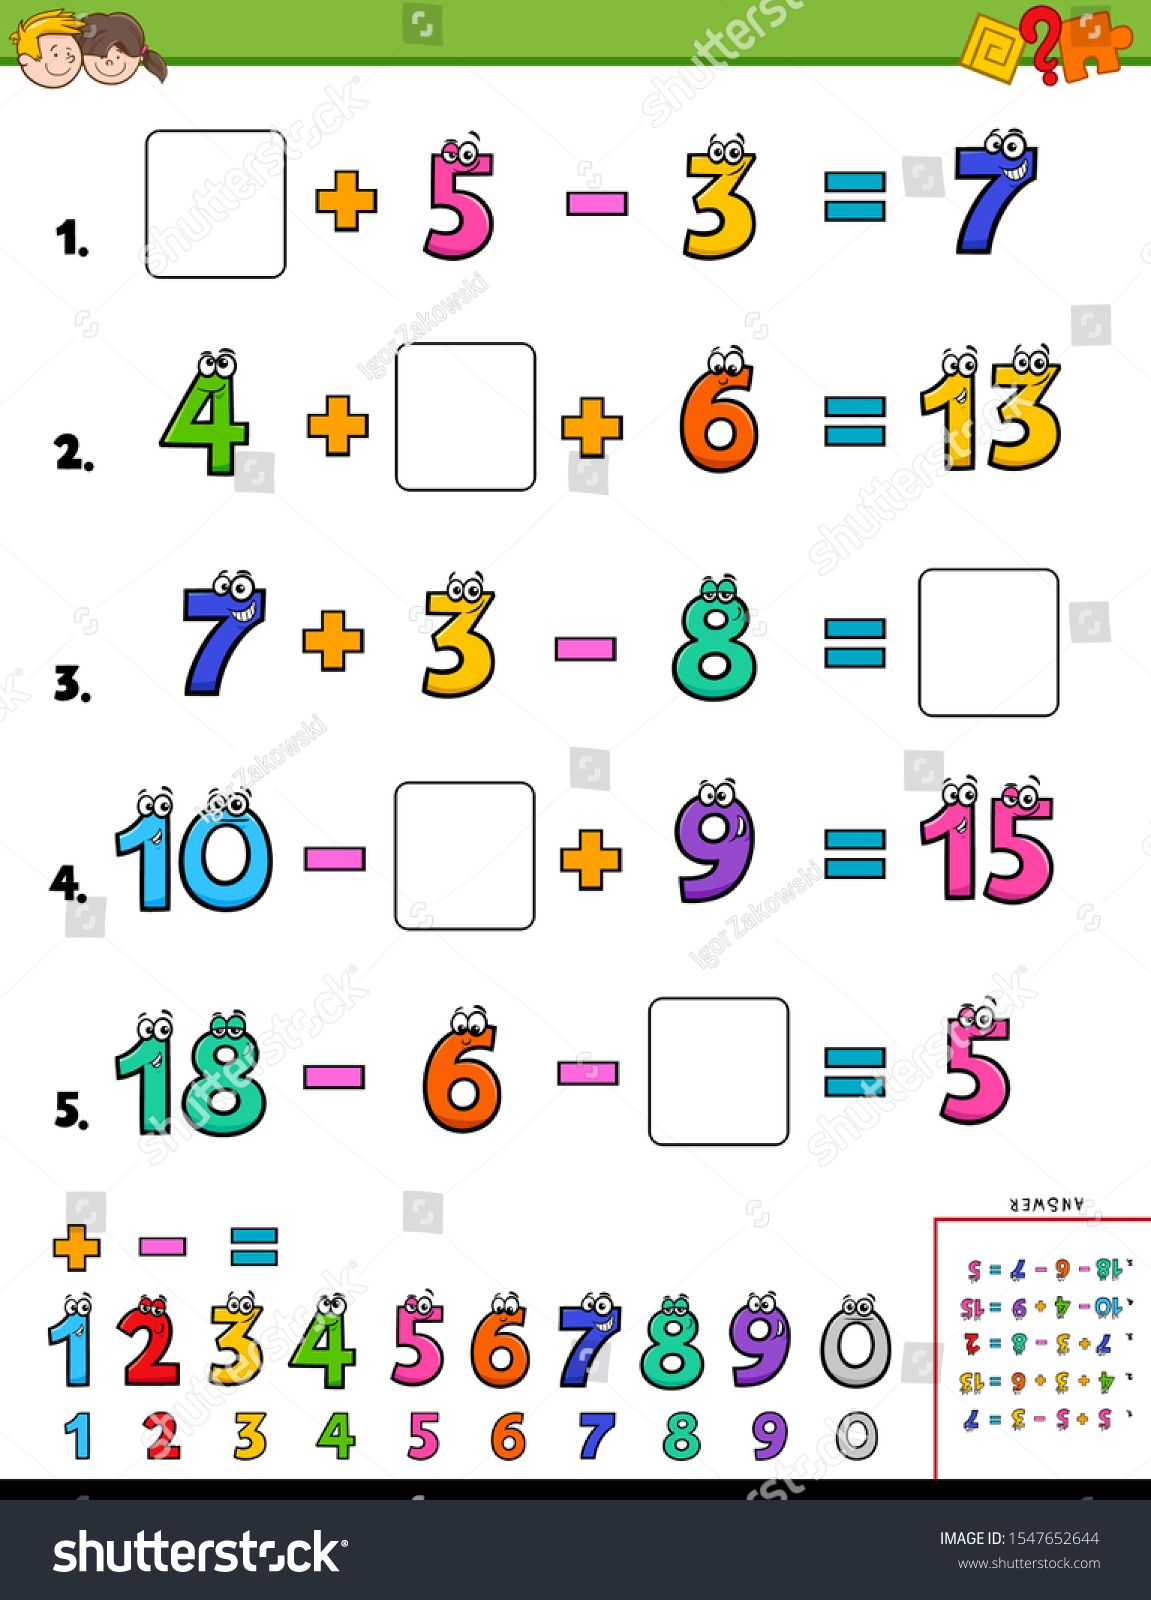 Cartoon Illustration Of Educational Mathematical